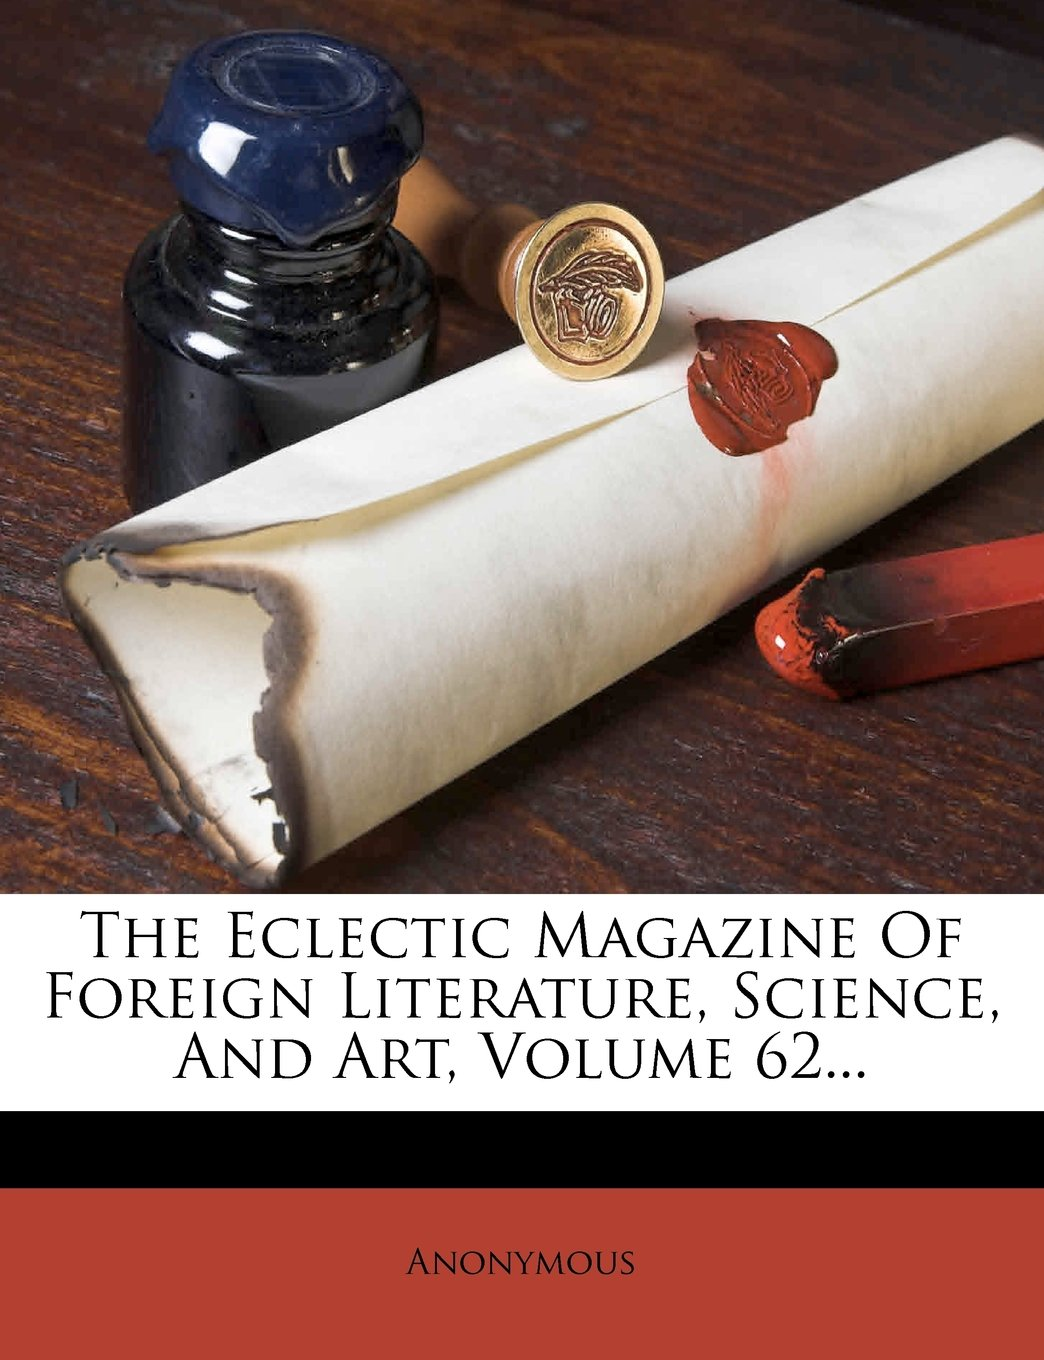 Download The Eclectic Magazine Of Foreign Literature, Science, And Art, Volume 62... PDF